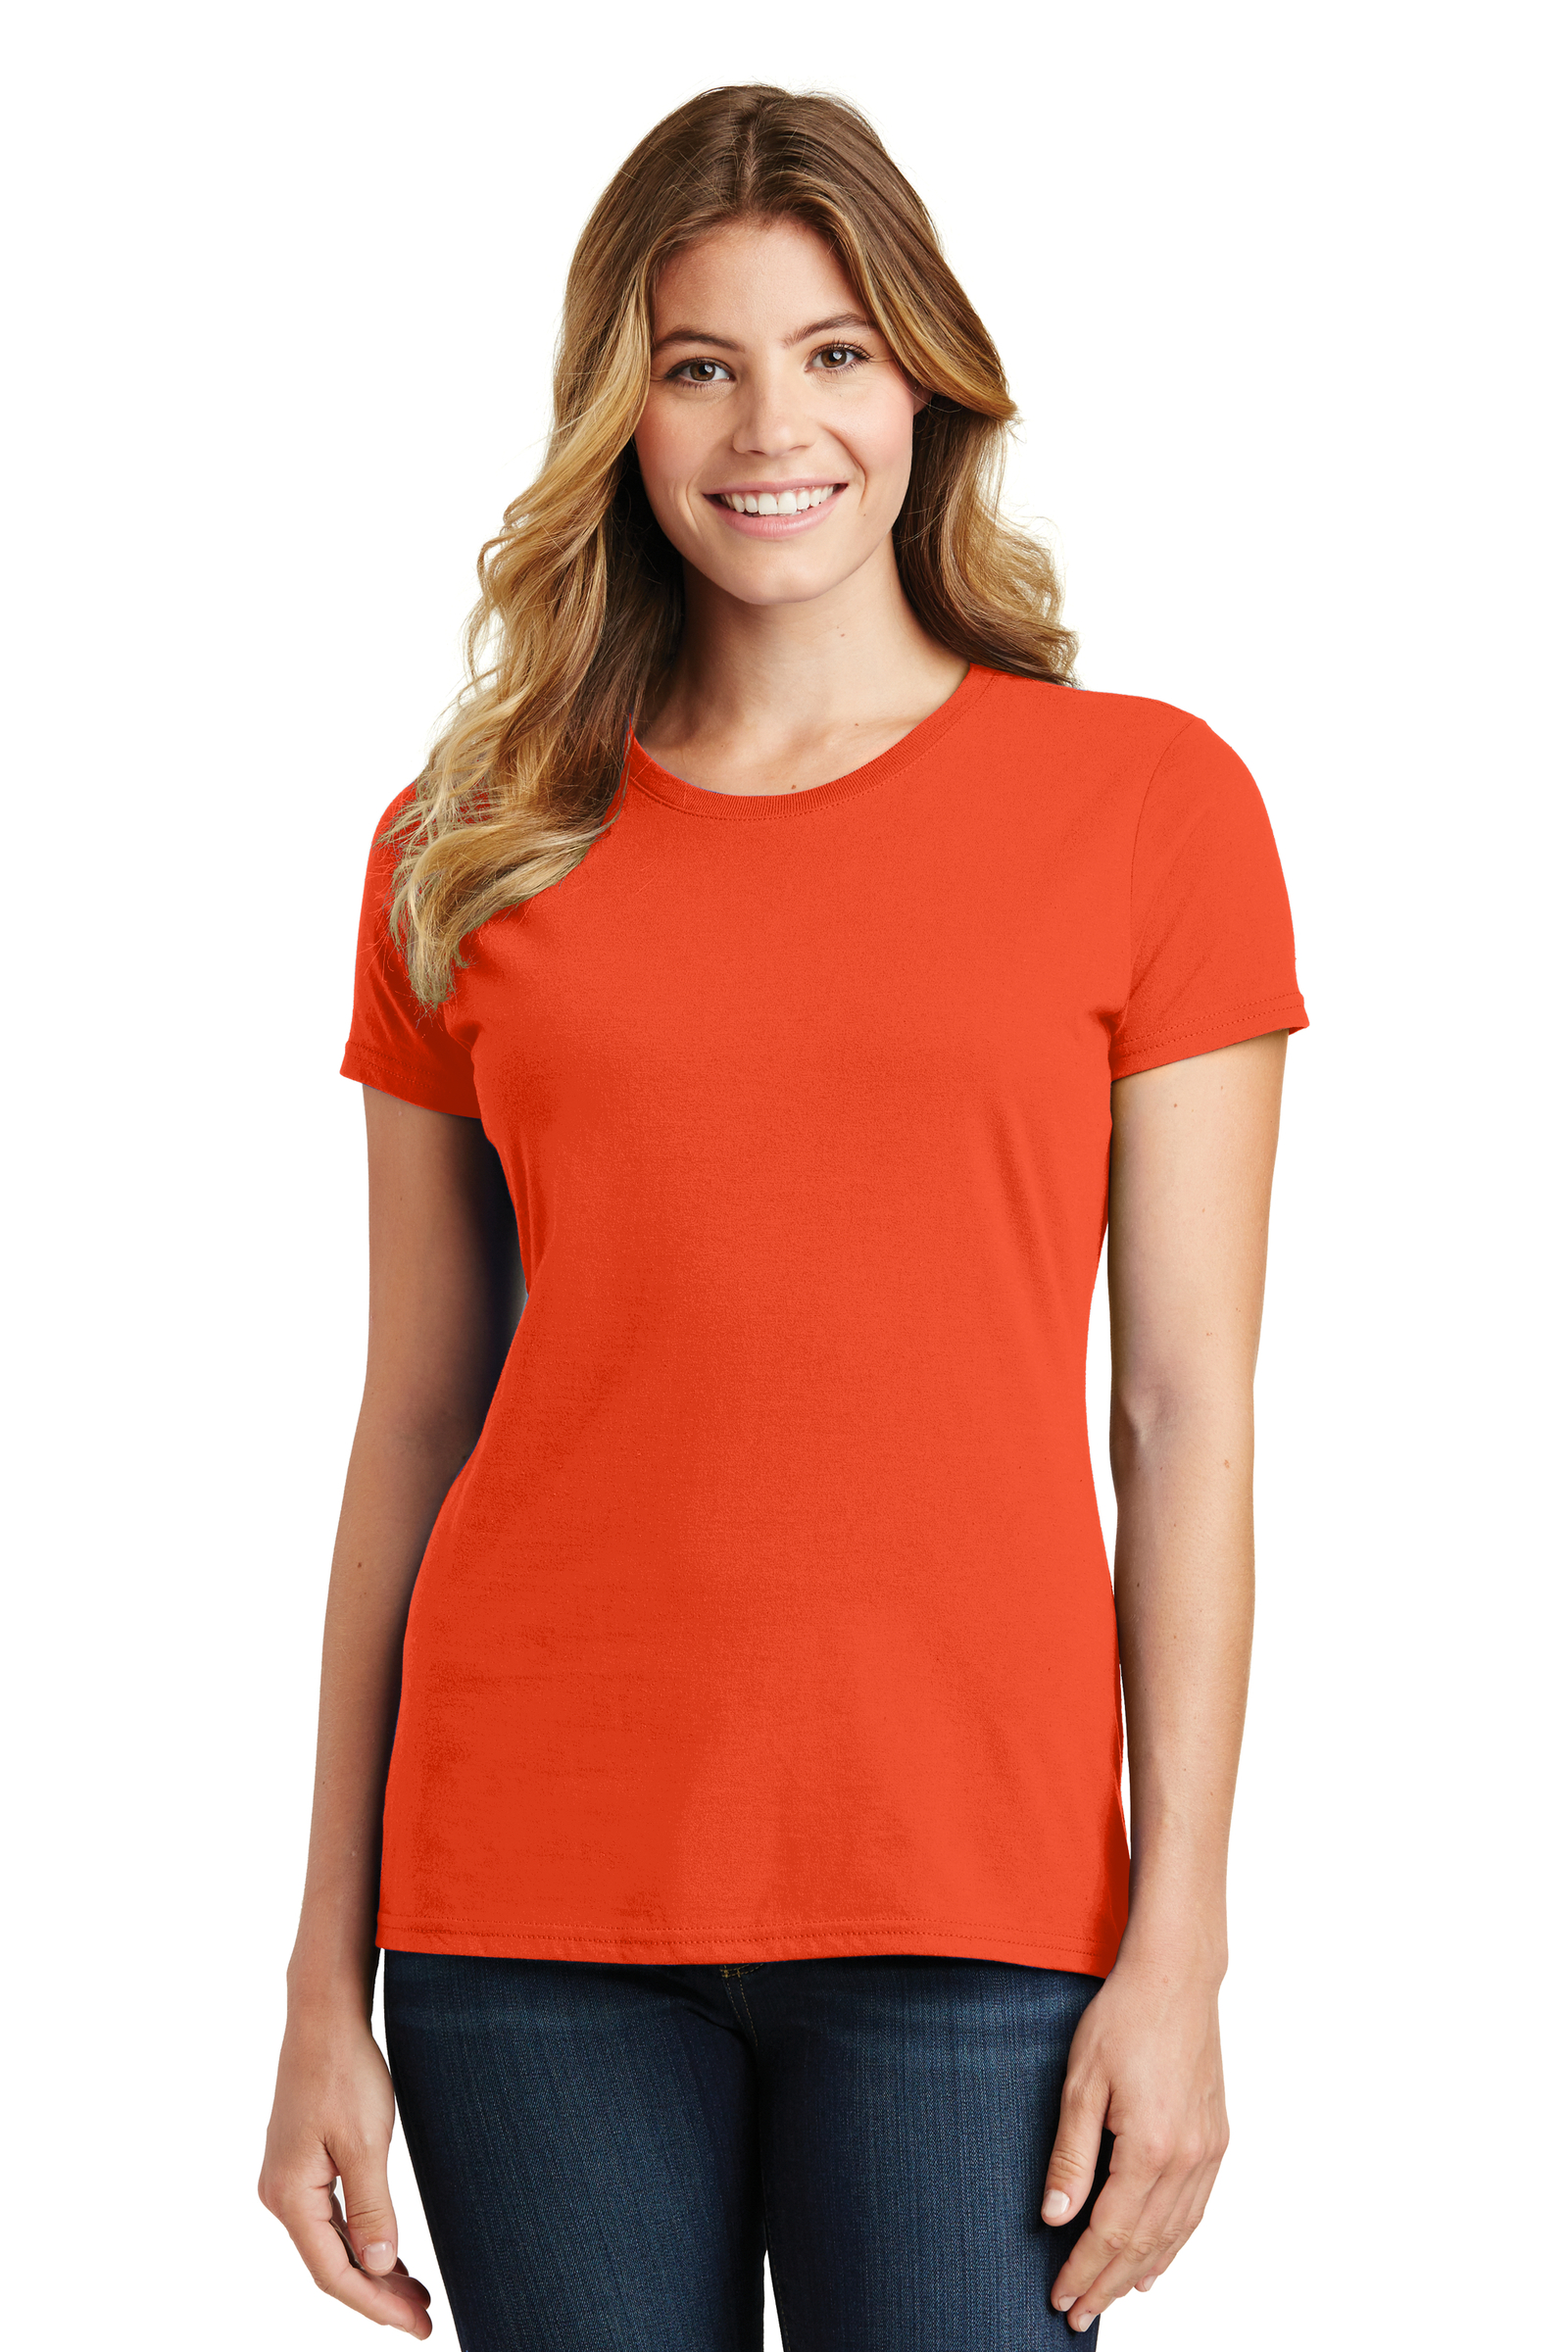 Port & Company Embroidered Women's Fan Favorite Tee